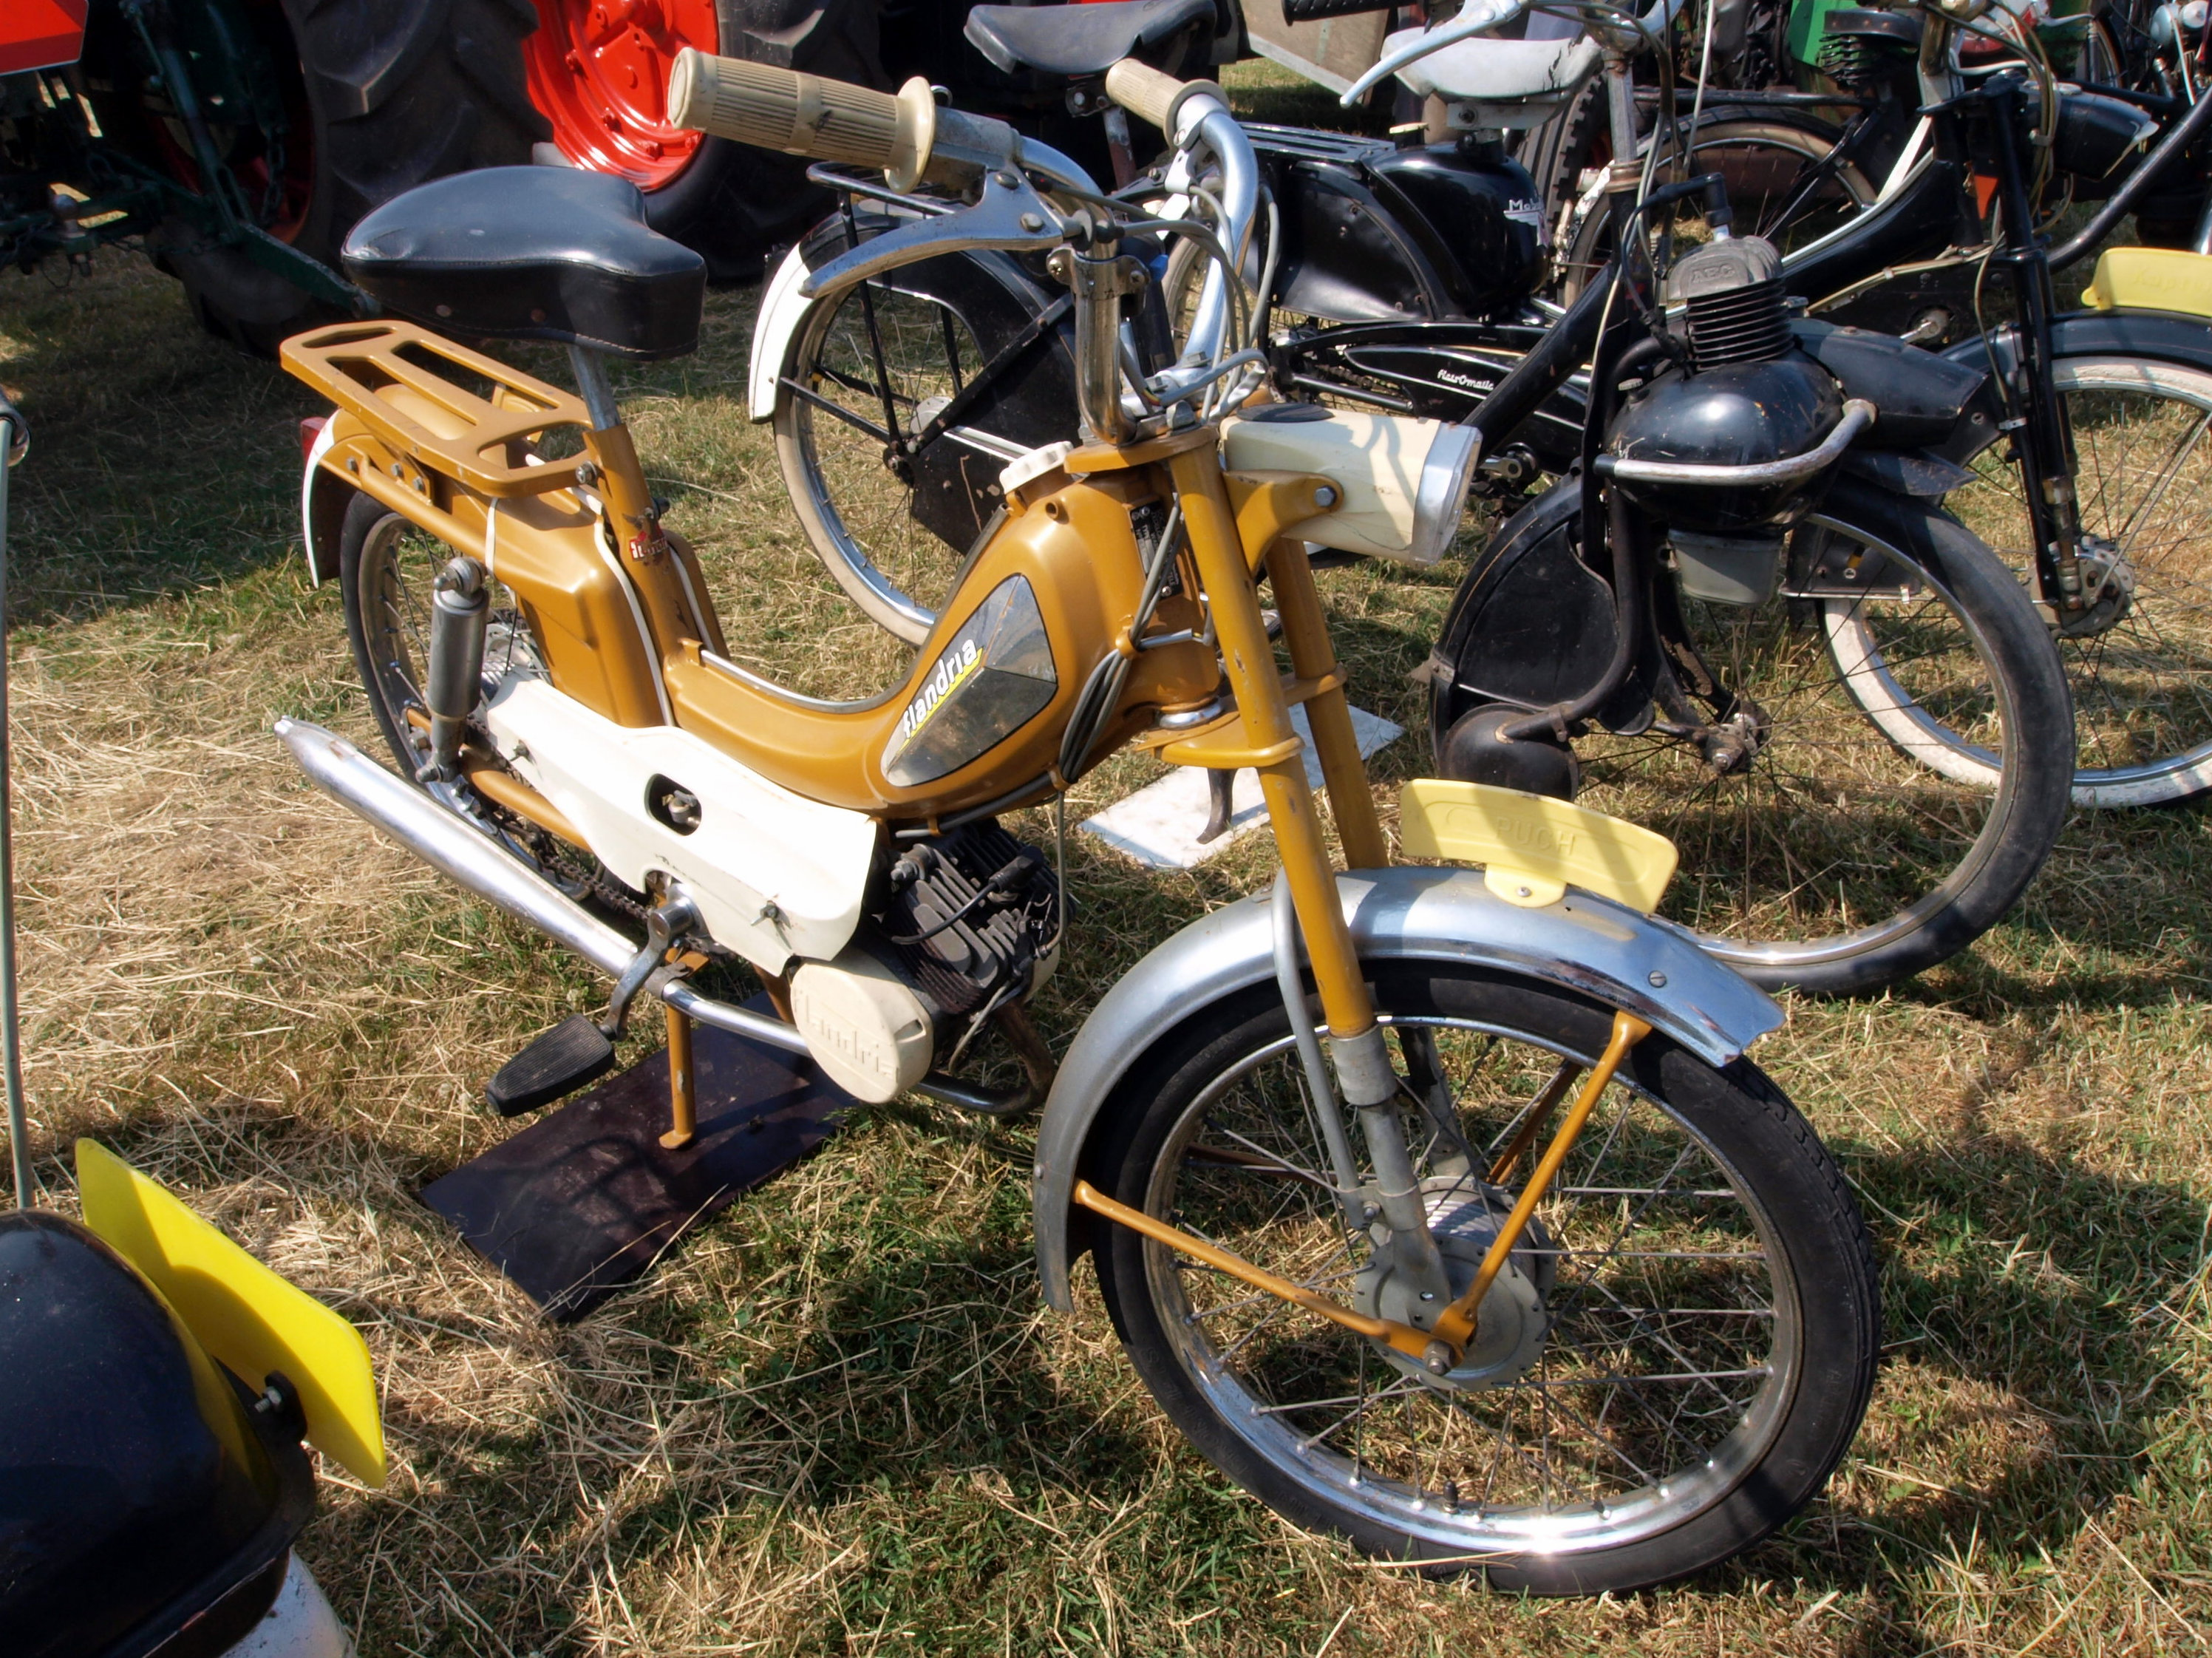 Flandria moped photo - 2